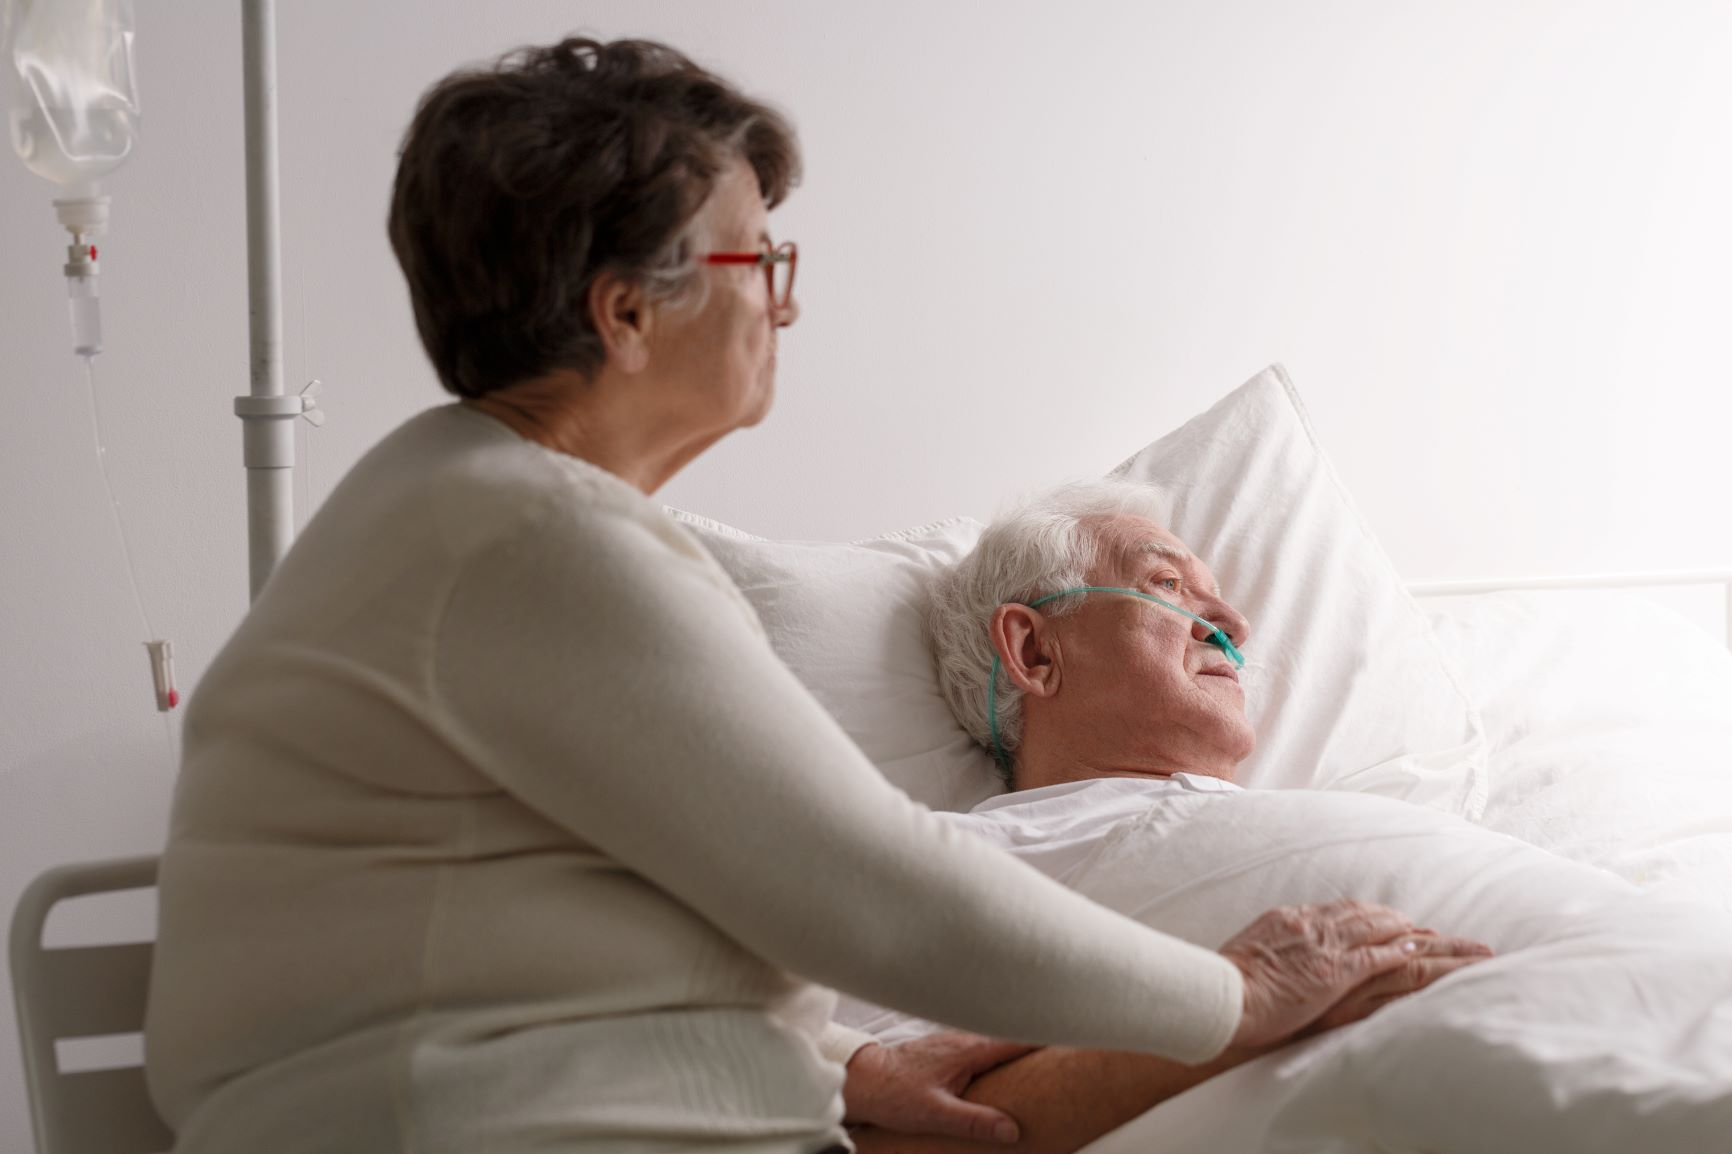 End of Life Care - Advanced Planning